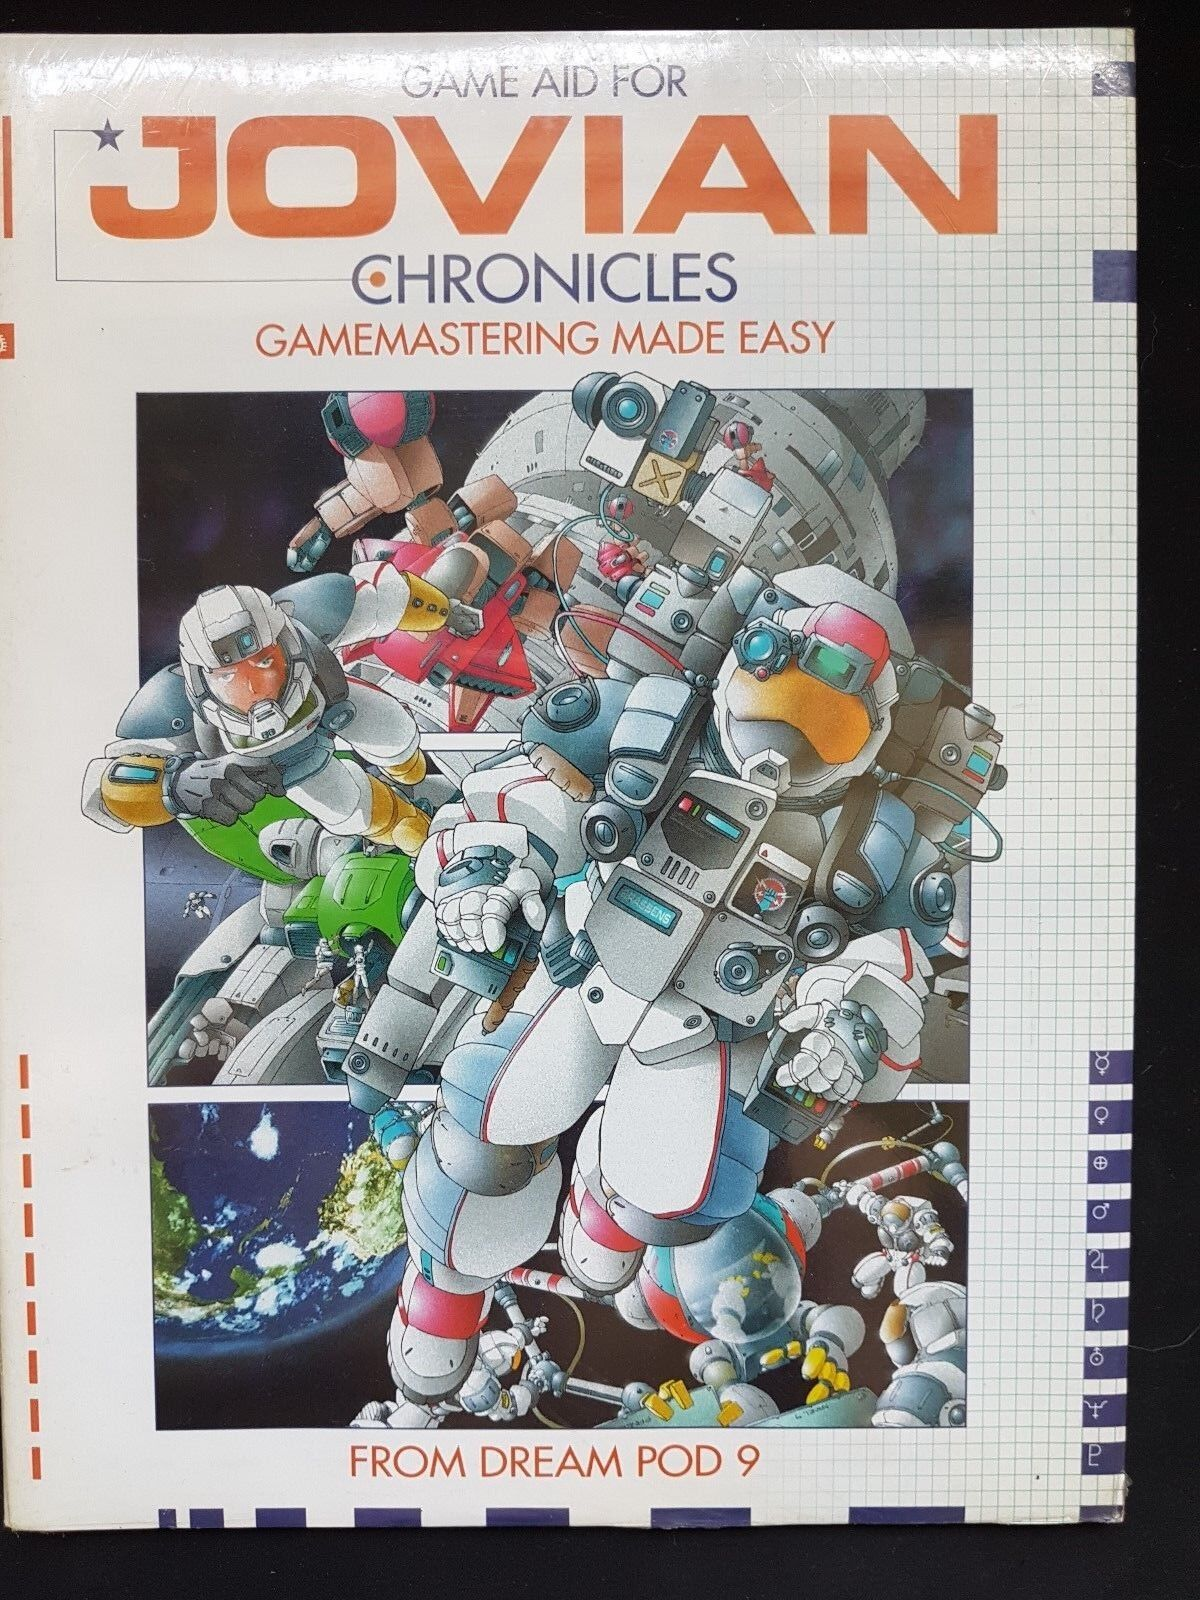 GAME AID FOR JOVIAN CHRONICLES GAME MASTERING MADE EASY  - DREAM POD 9 - NEW